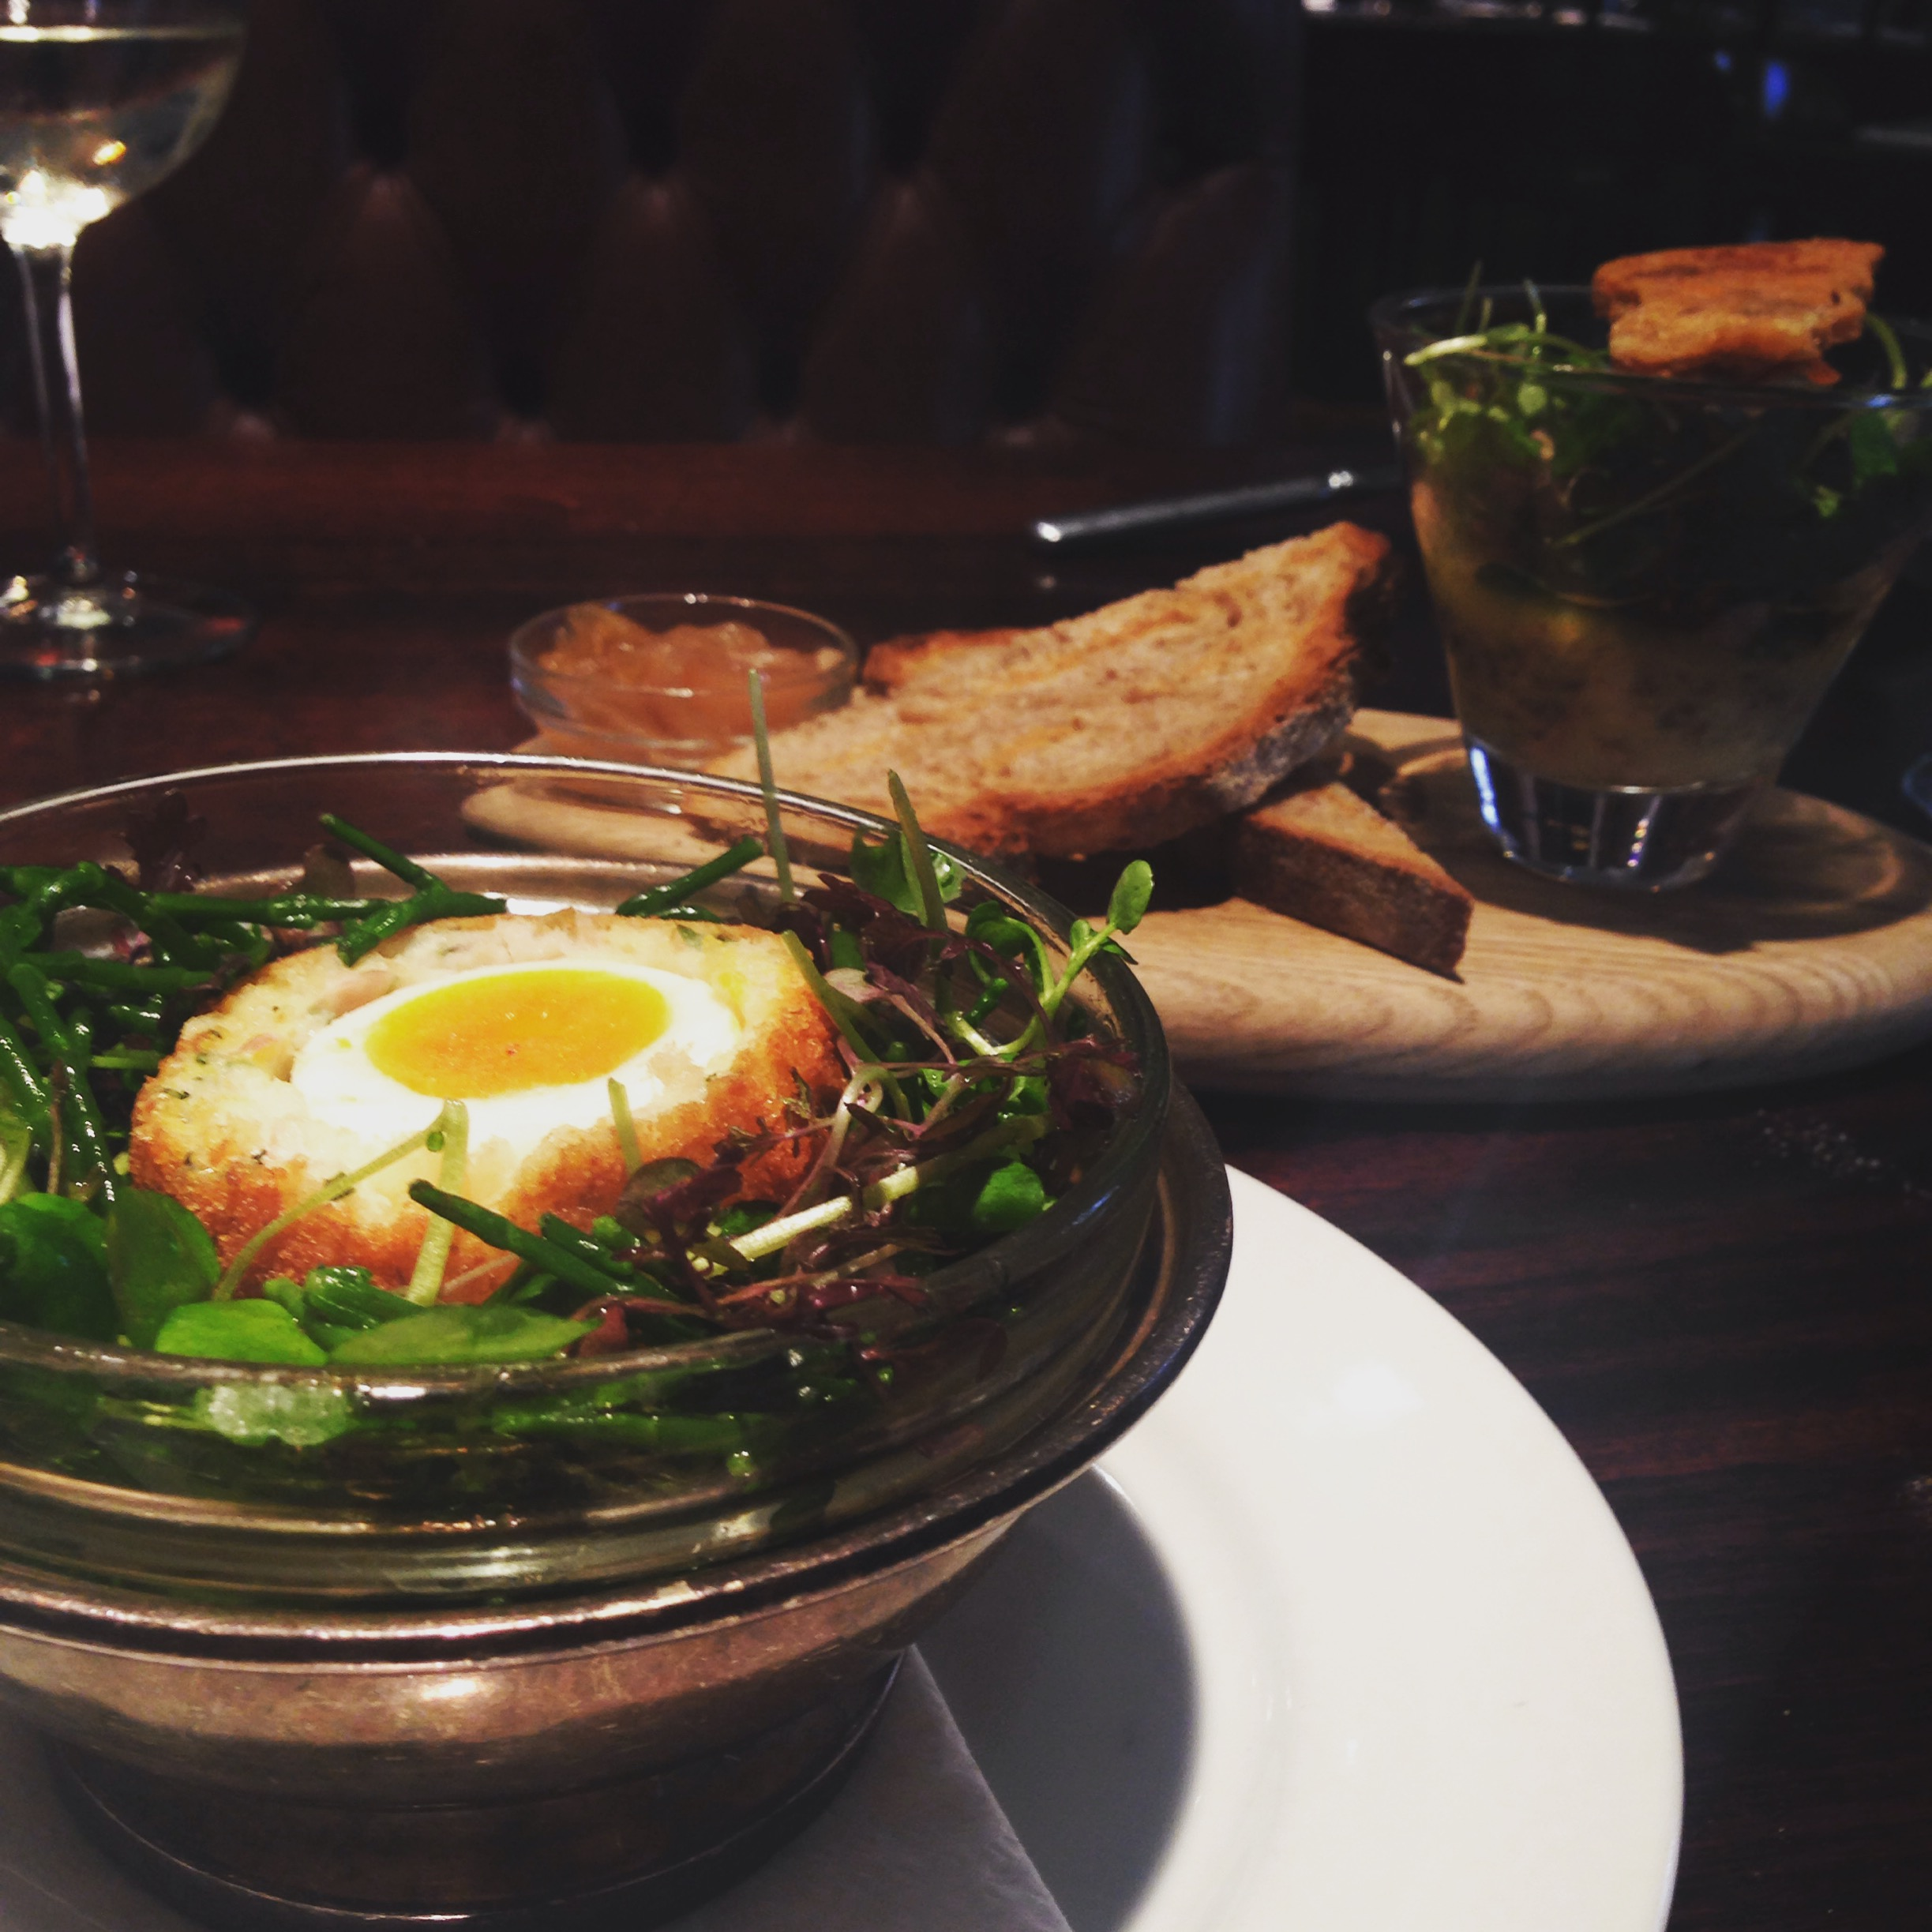 scotch-egg-smoked-haddock-reform-social-grill-review